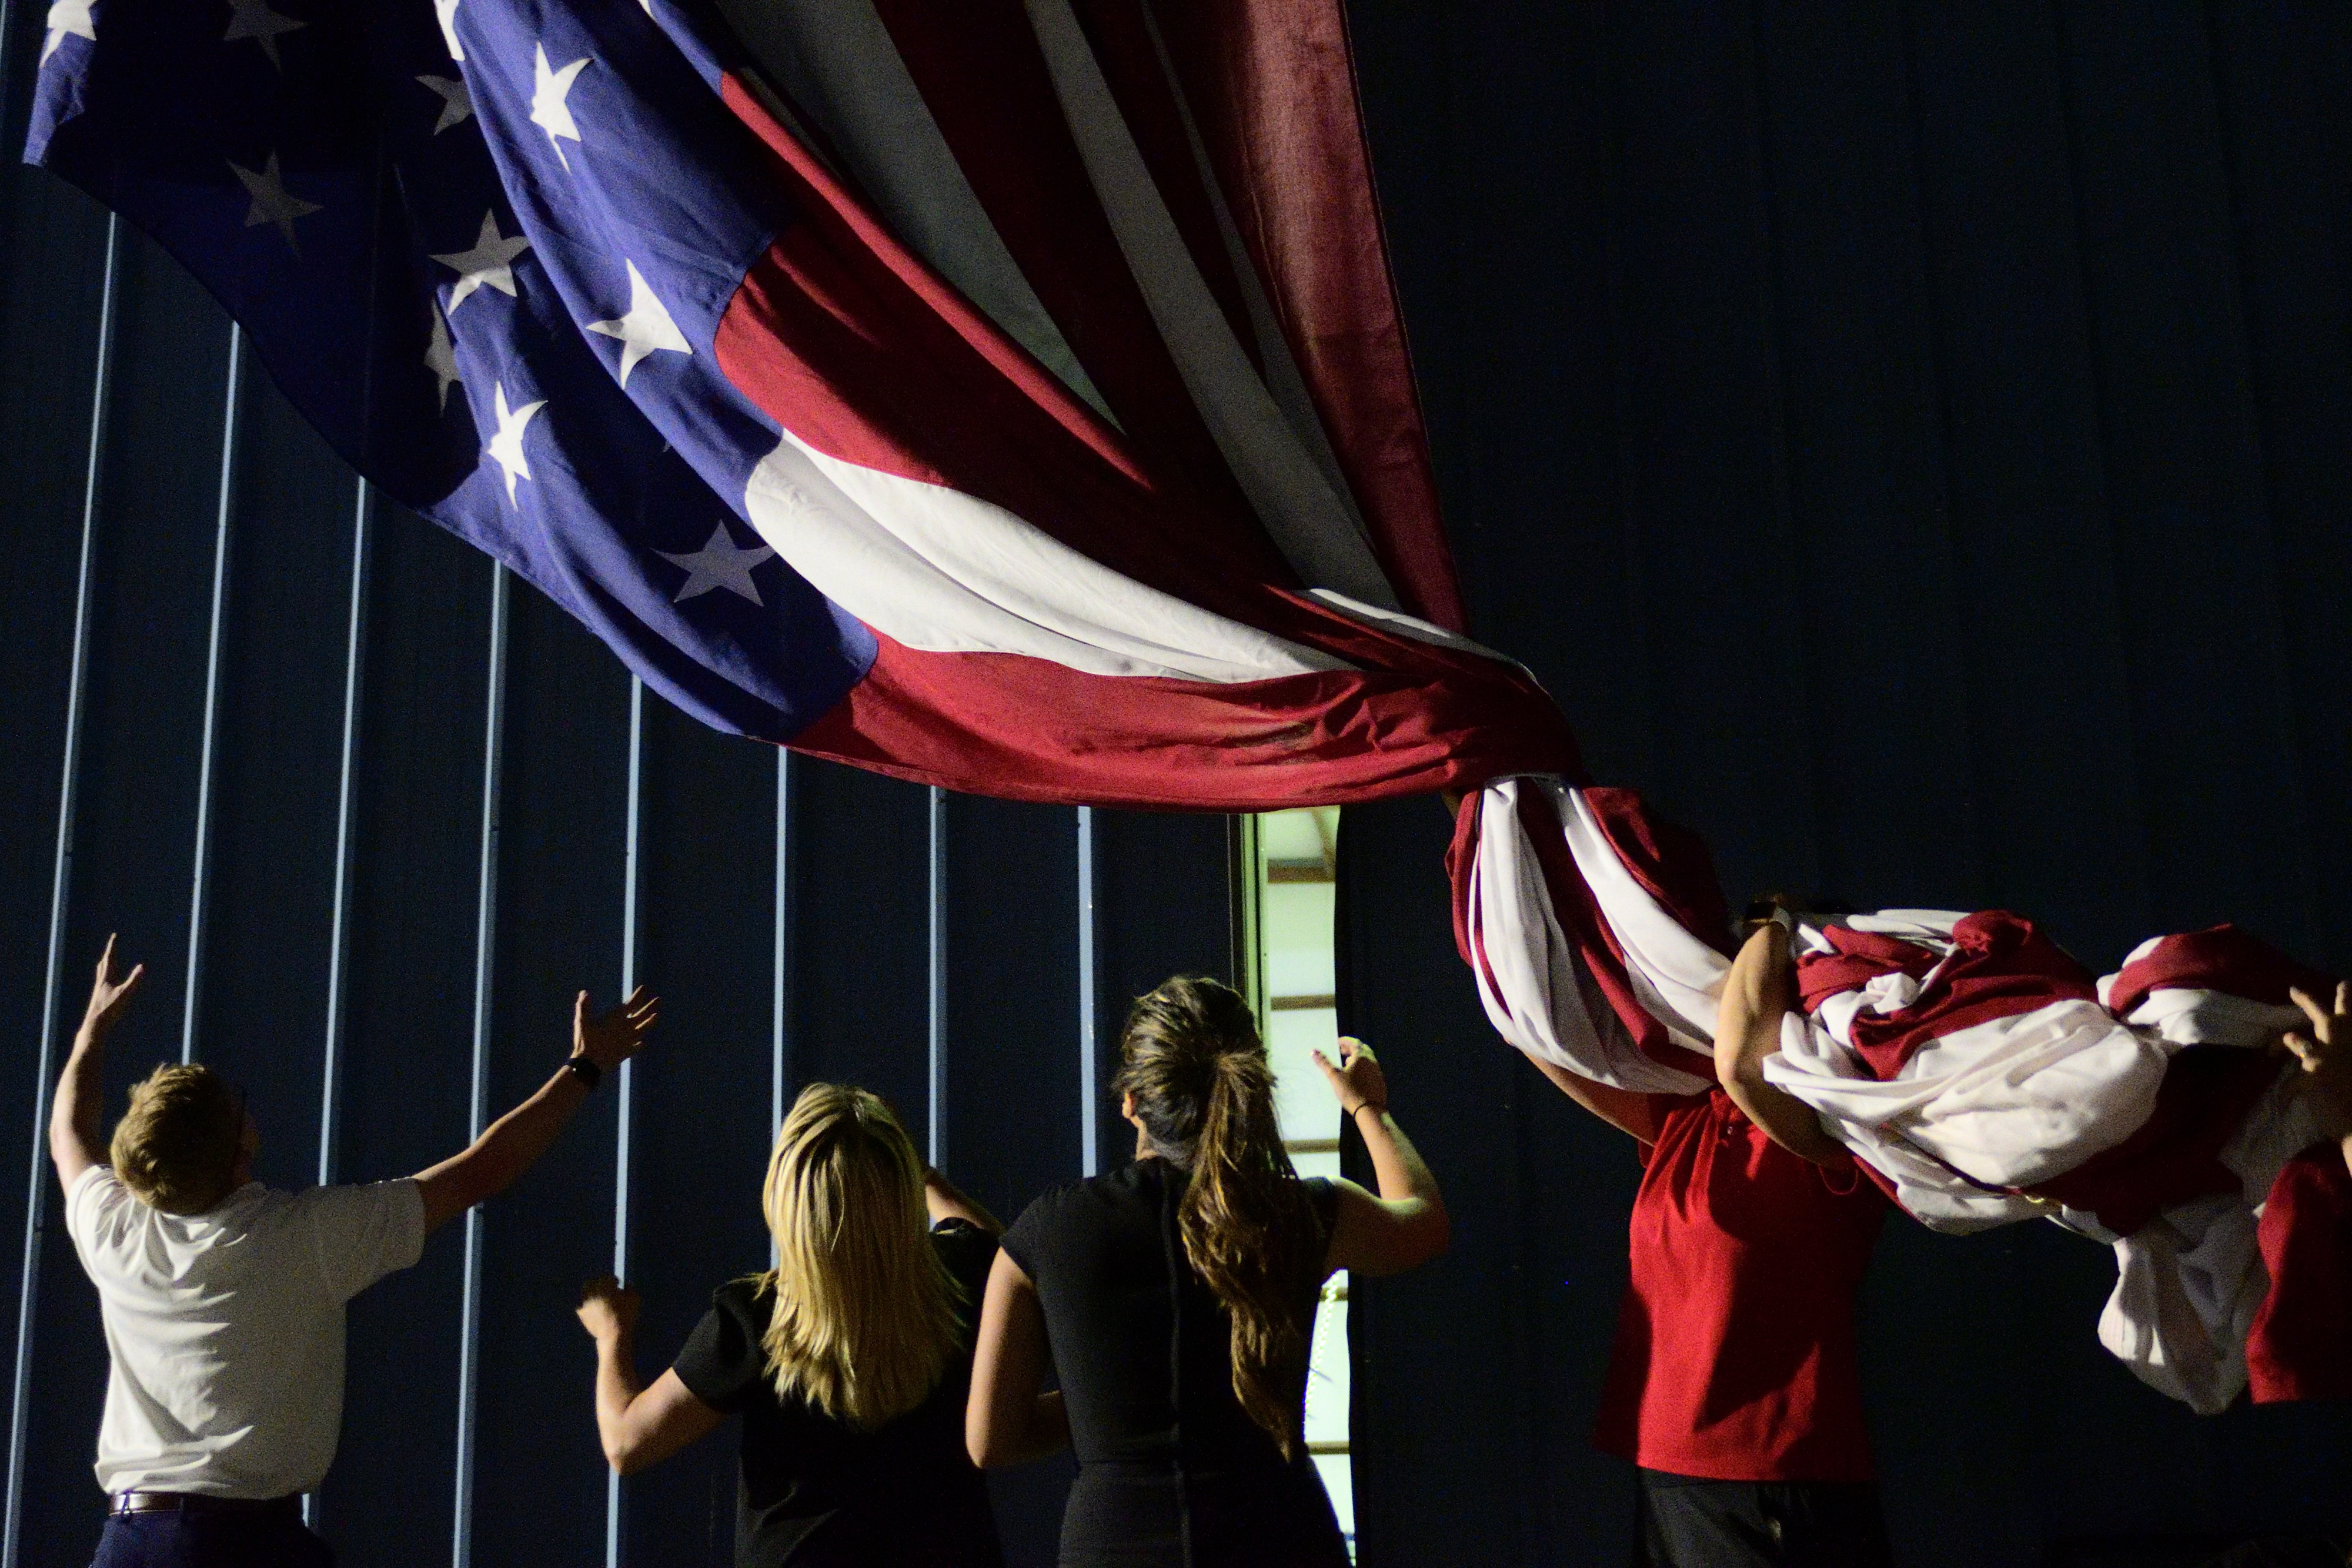 Several people help to take down from onstage a large decoration in the design of the American flag.